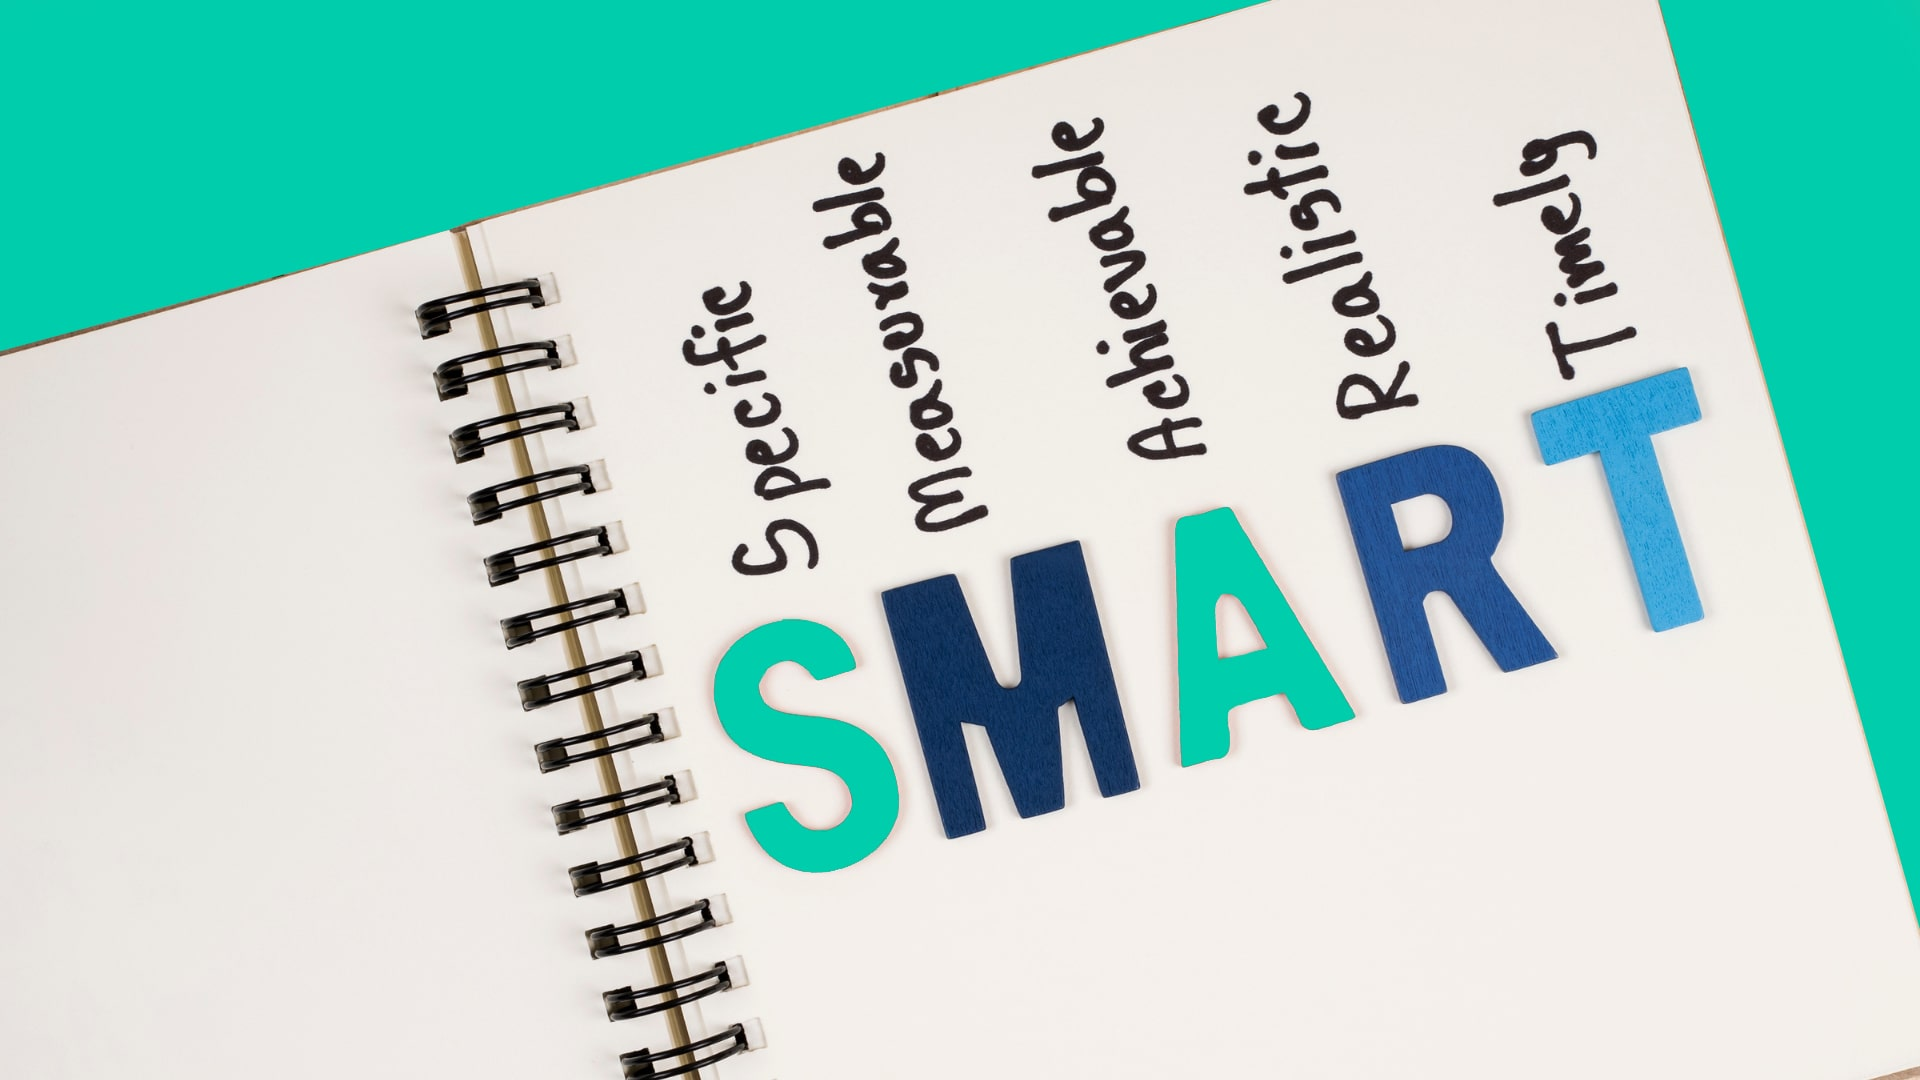 SMART SULTS